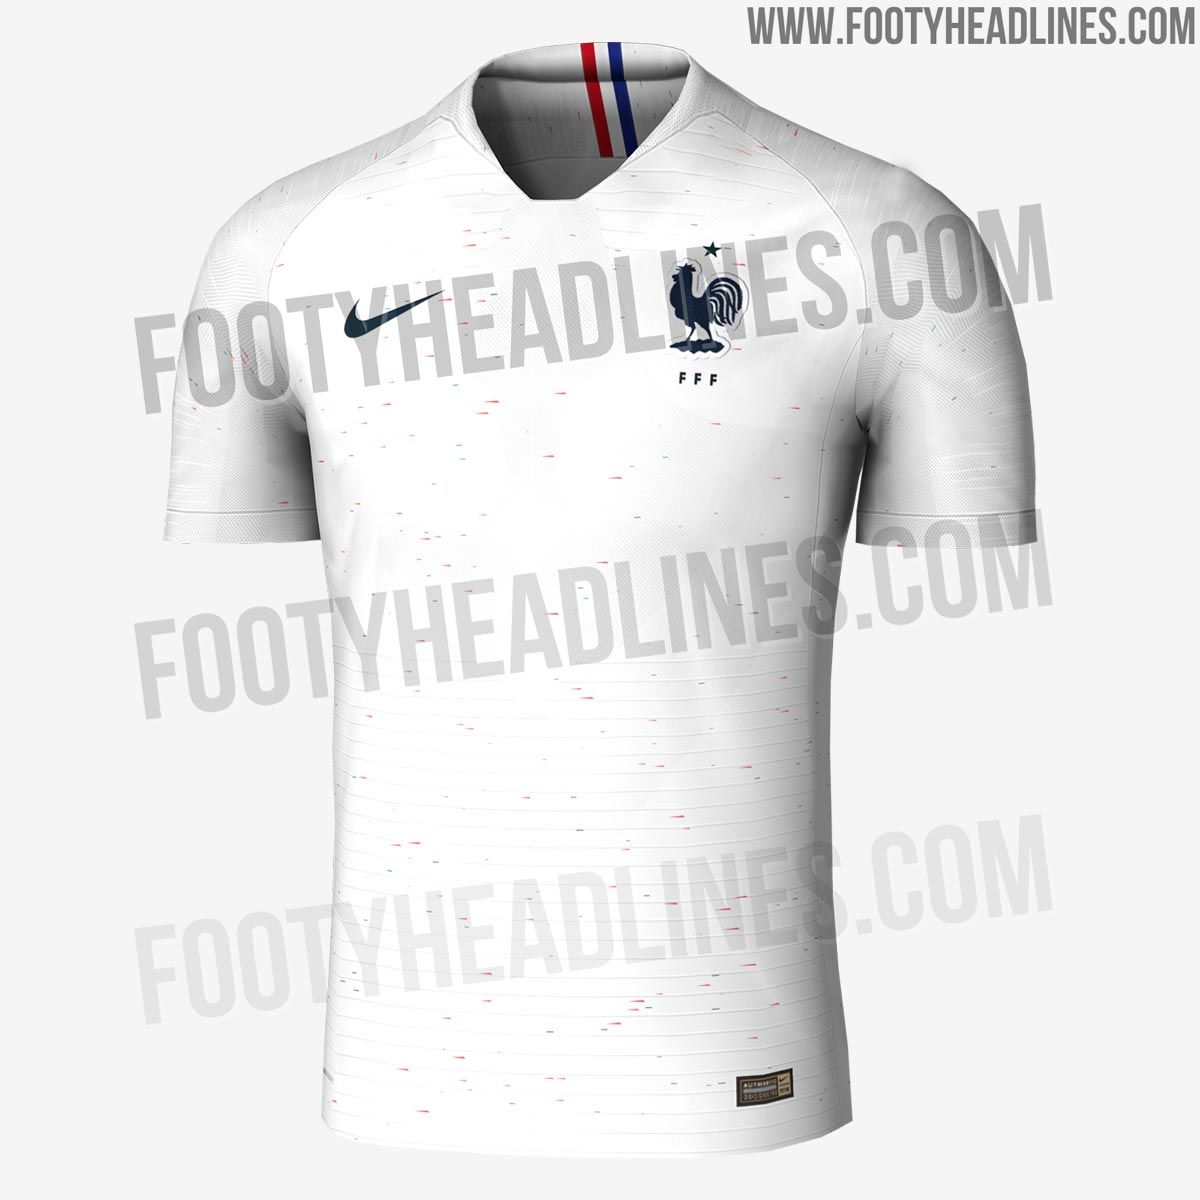 The France 2018 World Cup Away Kit Will Introduce A Brand New Look That Draws Inspiration From 1990s Patterns World Cup Team Wear Mens Tops